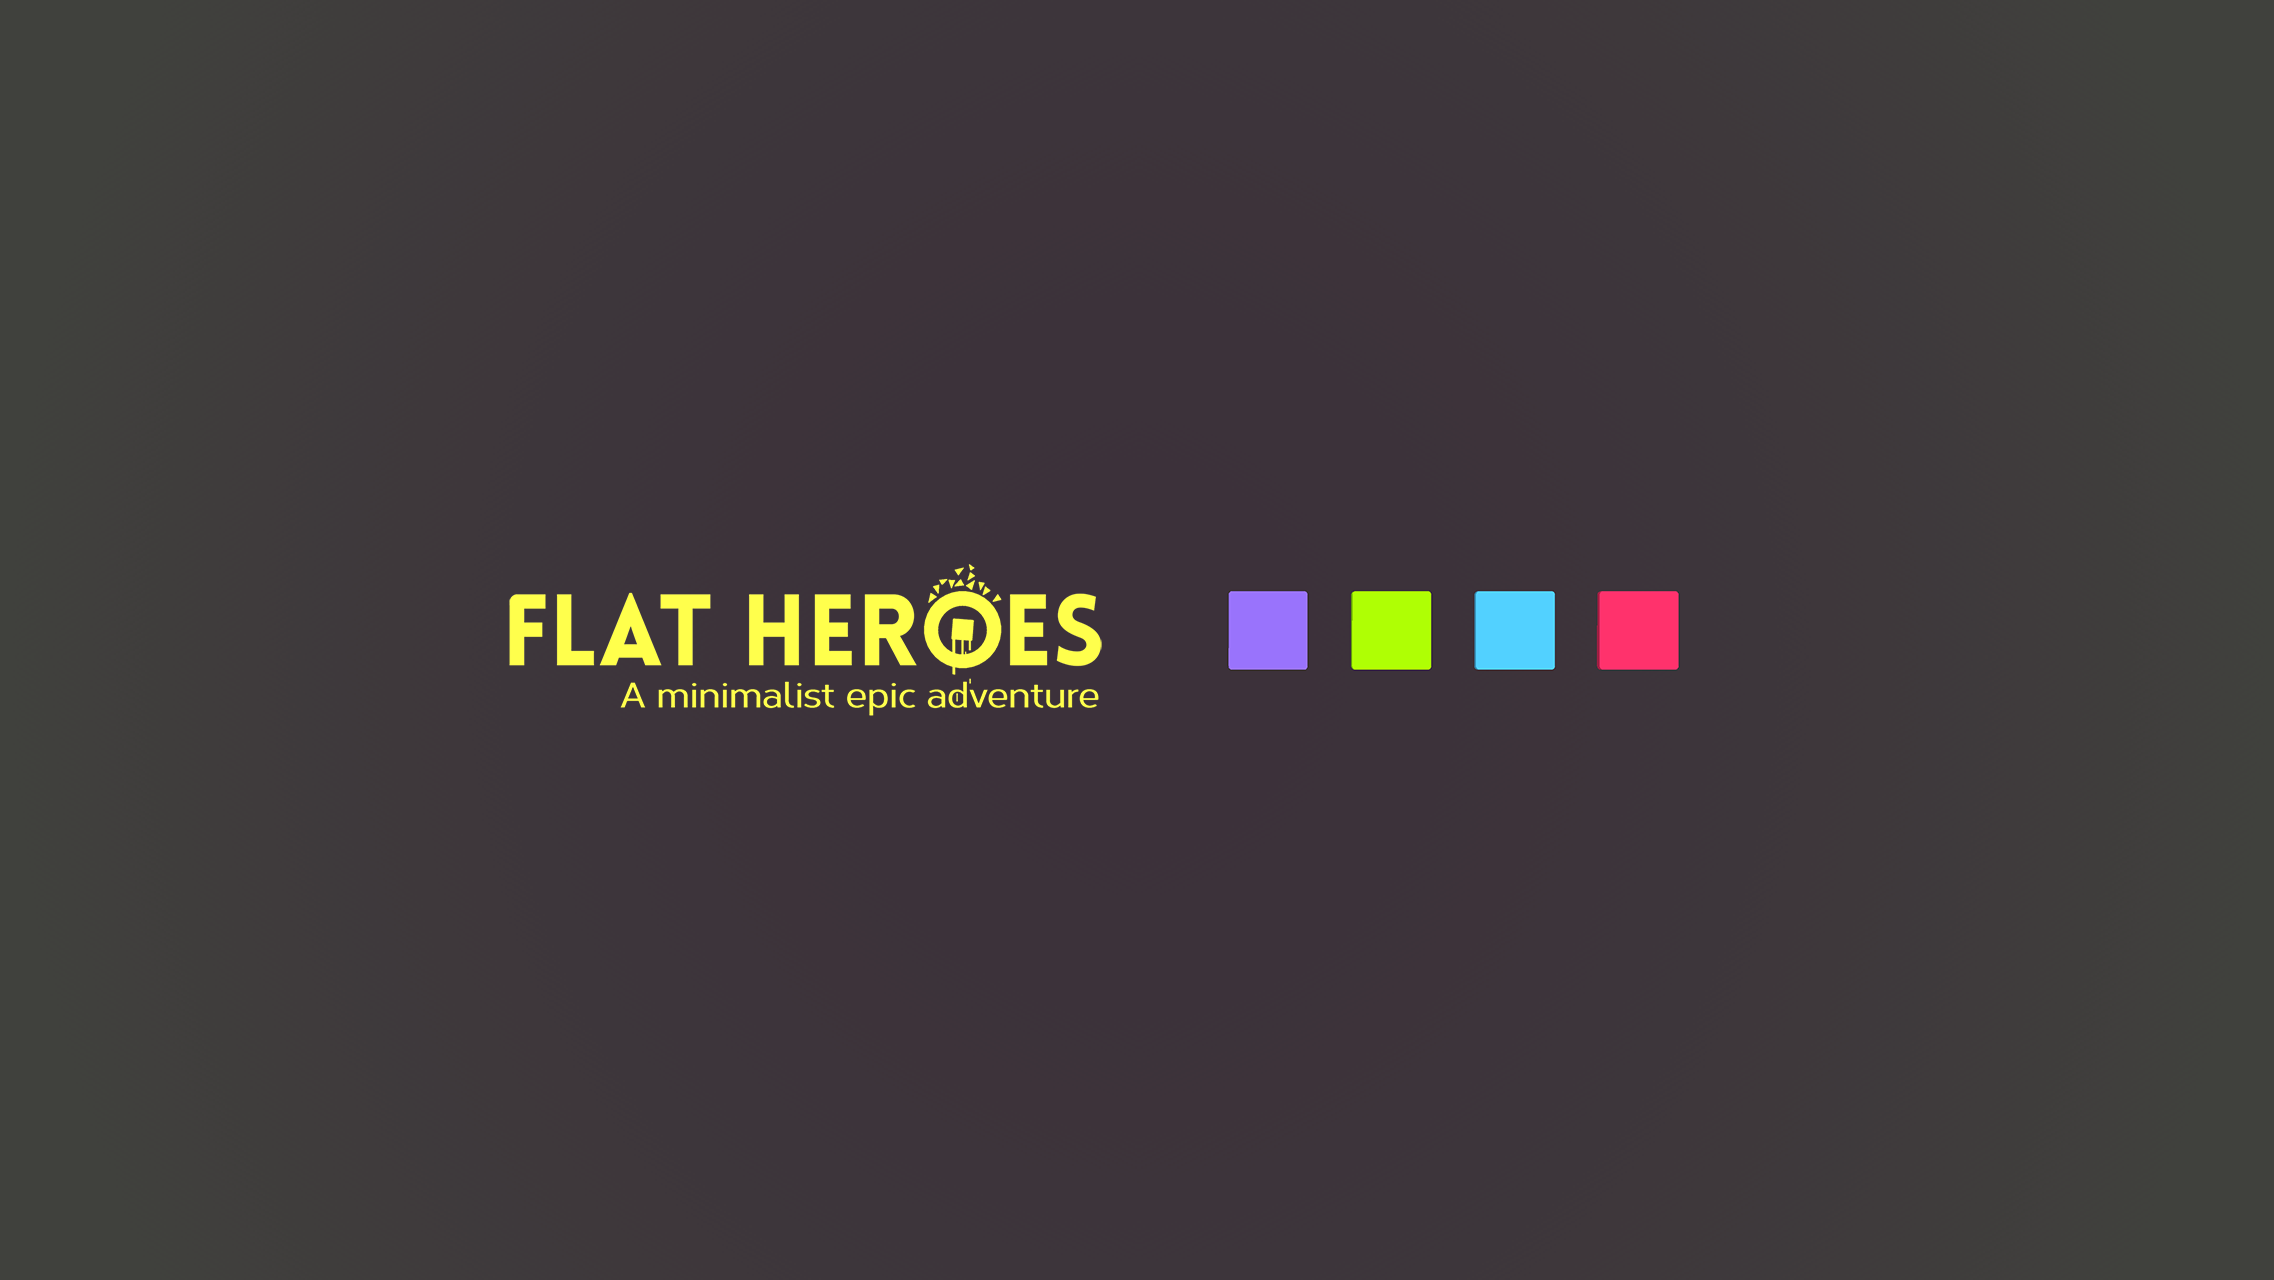 Flat Heroes pits players against each other in mad multiplayer action.